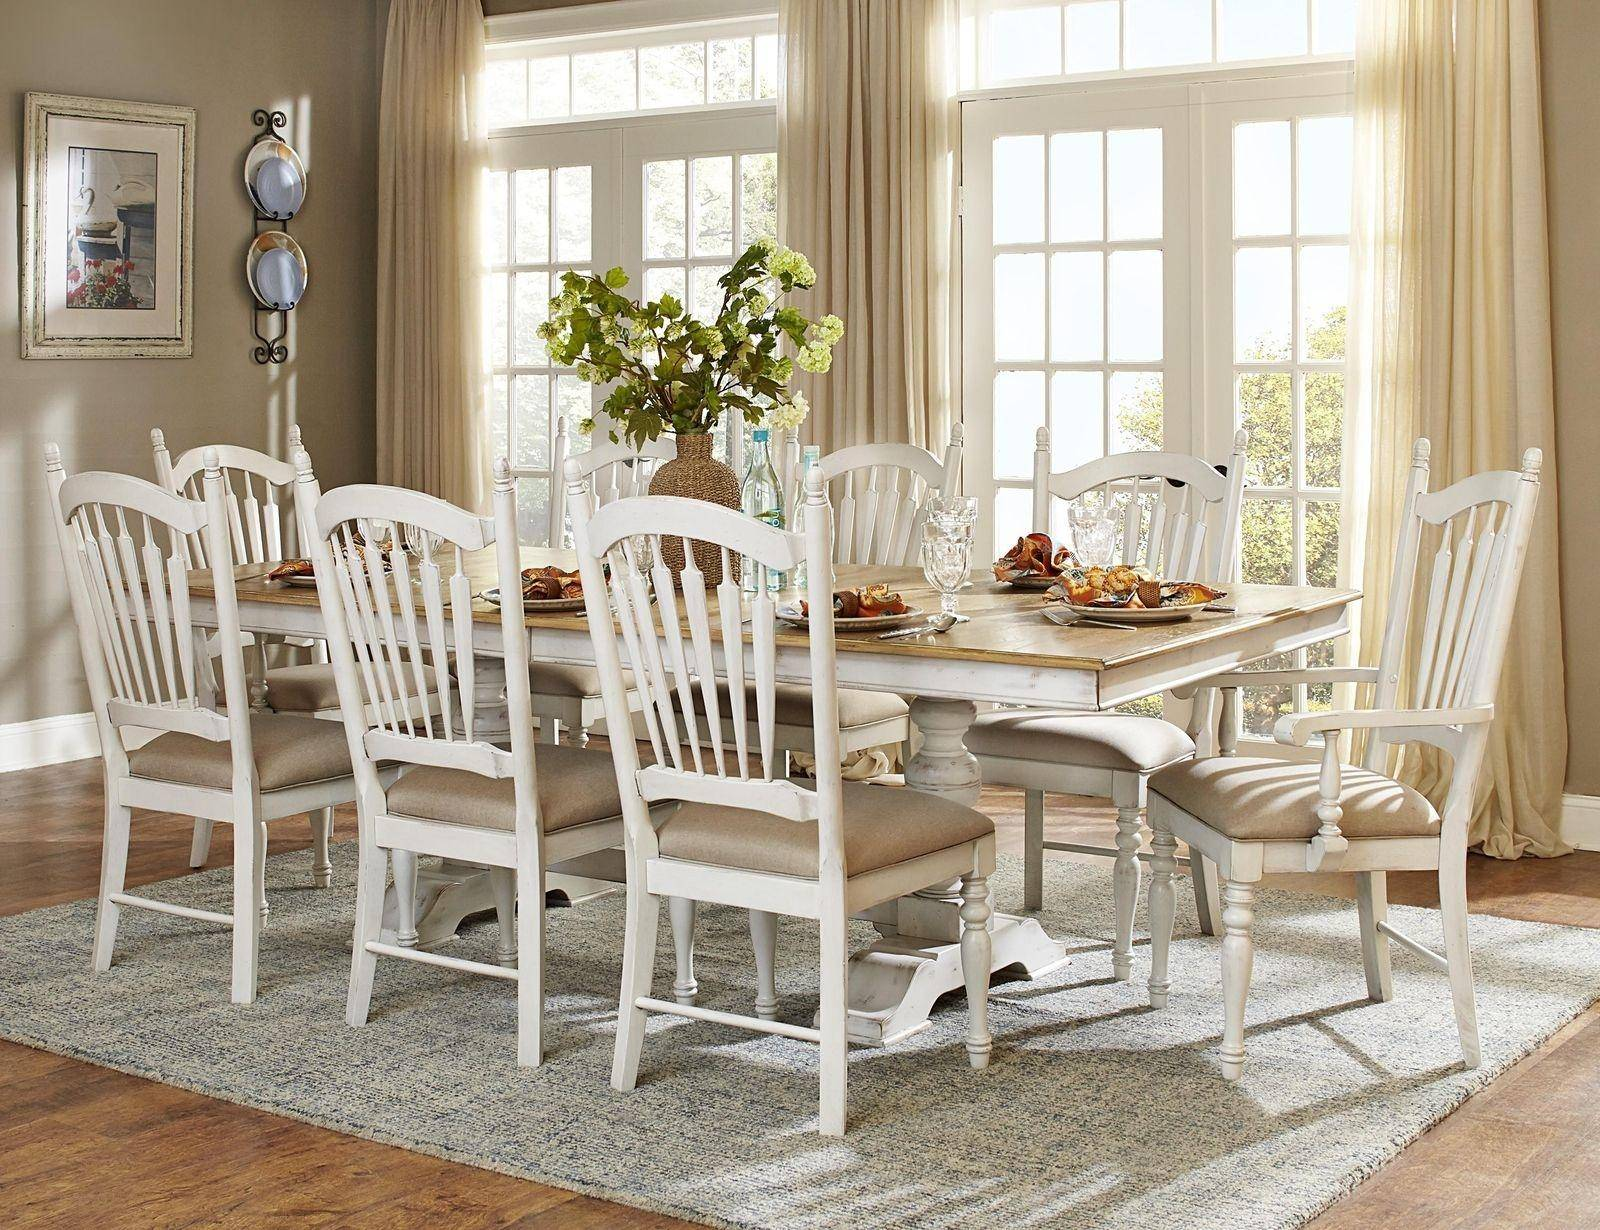 Pleasant 5123 96 Country 9P White Oak Wood Pedestal Leaf Dining Table Set Chair Gmtry Best Dining Table And Chair Ideas Images Gmtryco